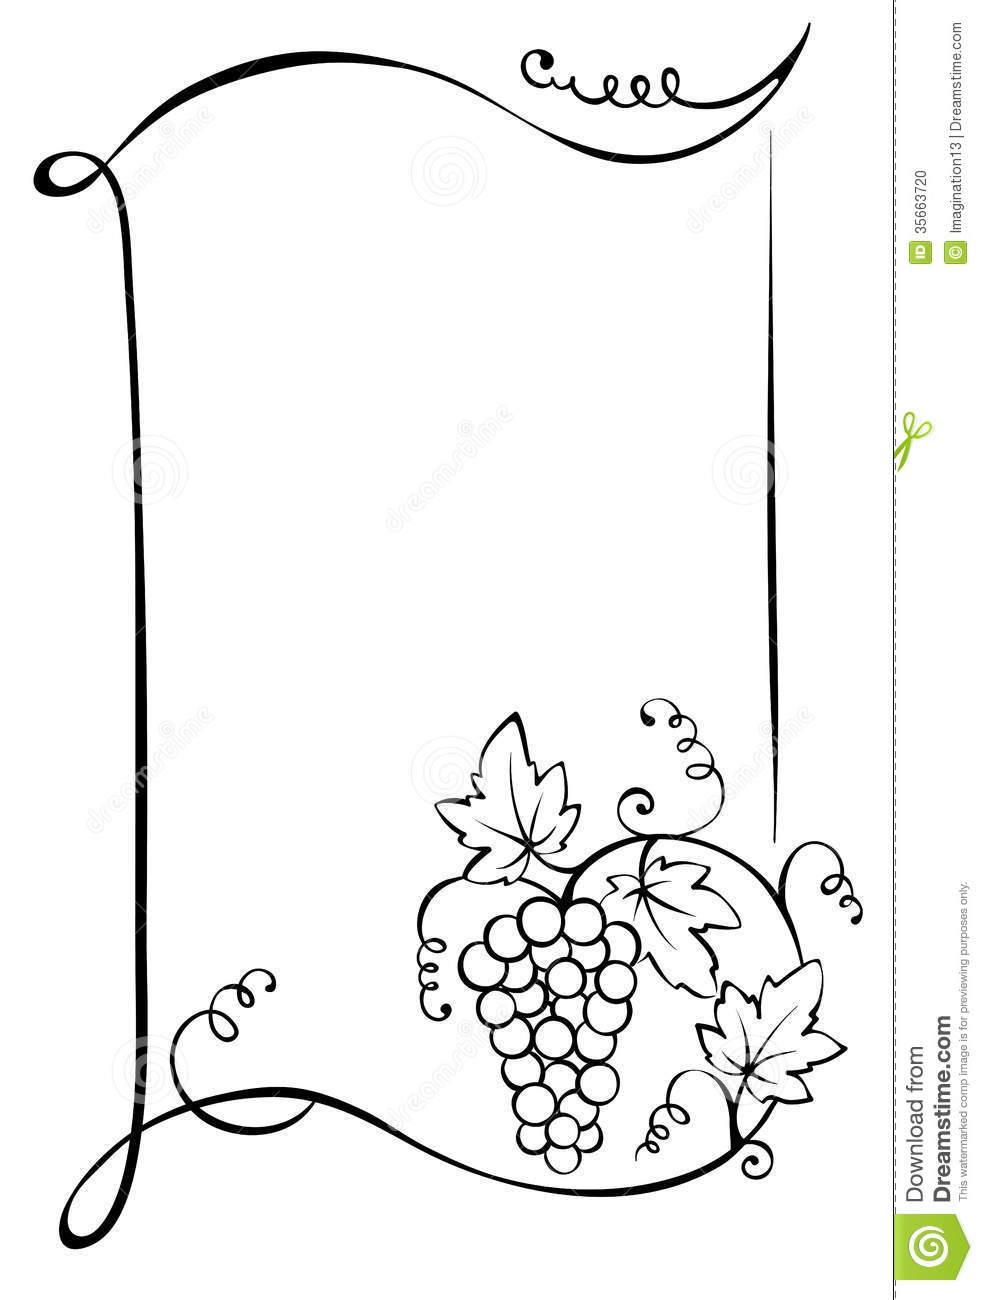 Frame with vine stock vector. Illustration of label, wine